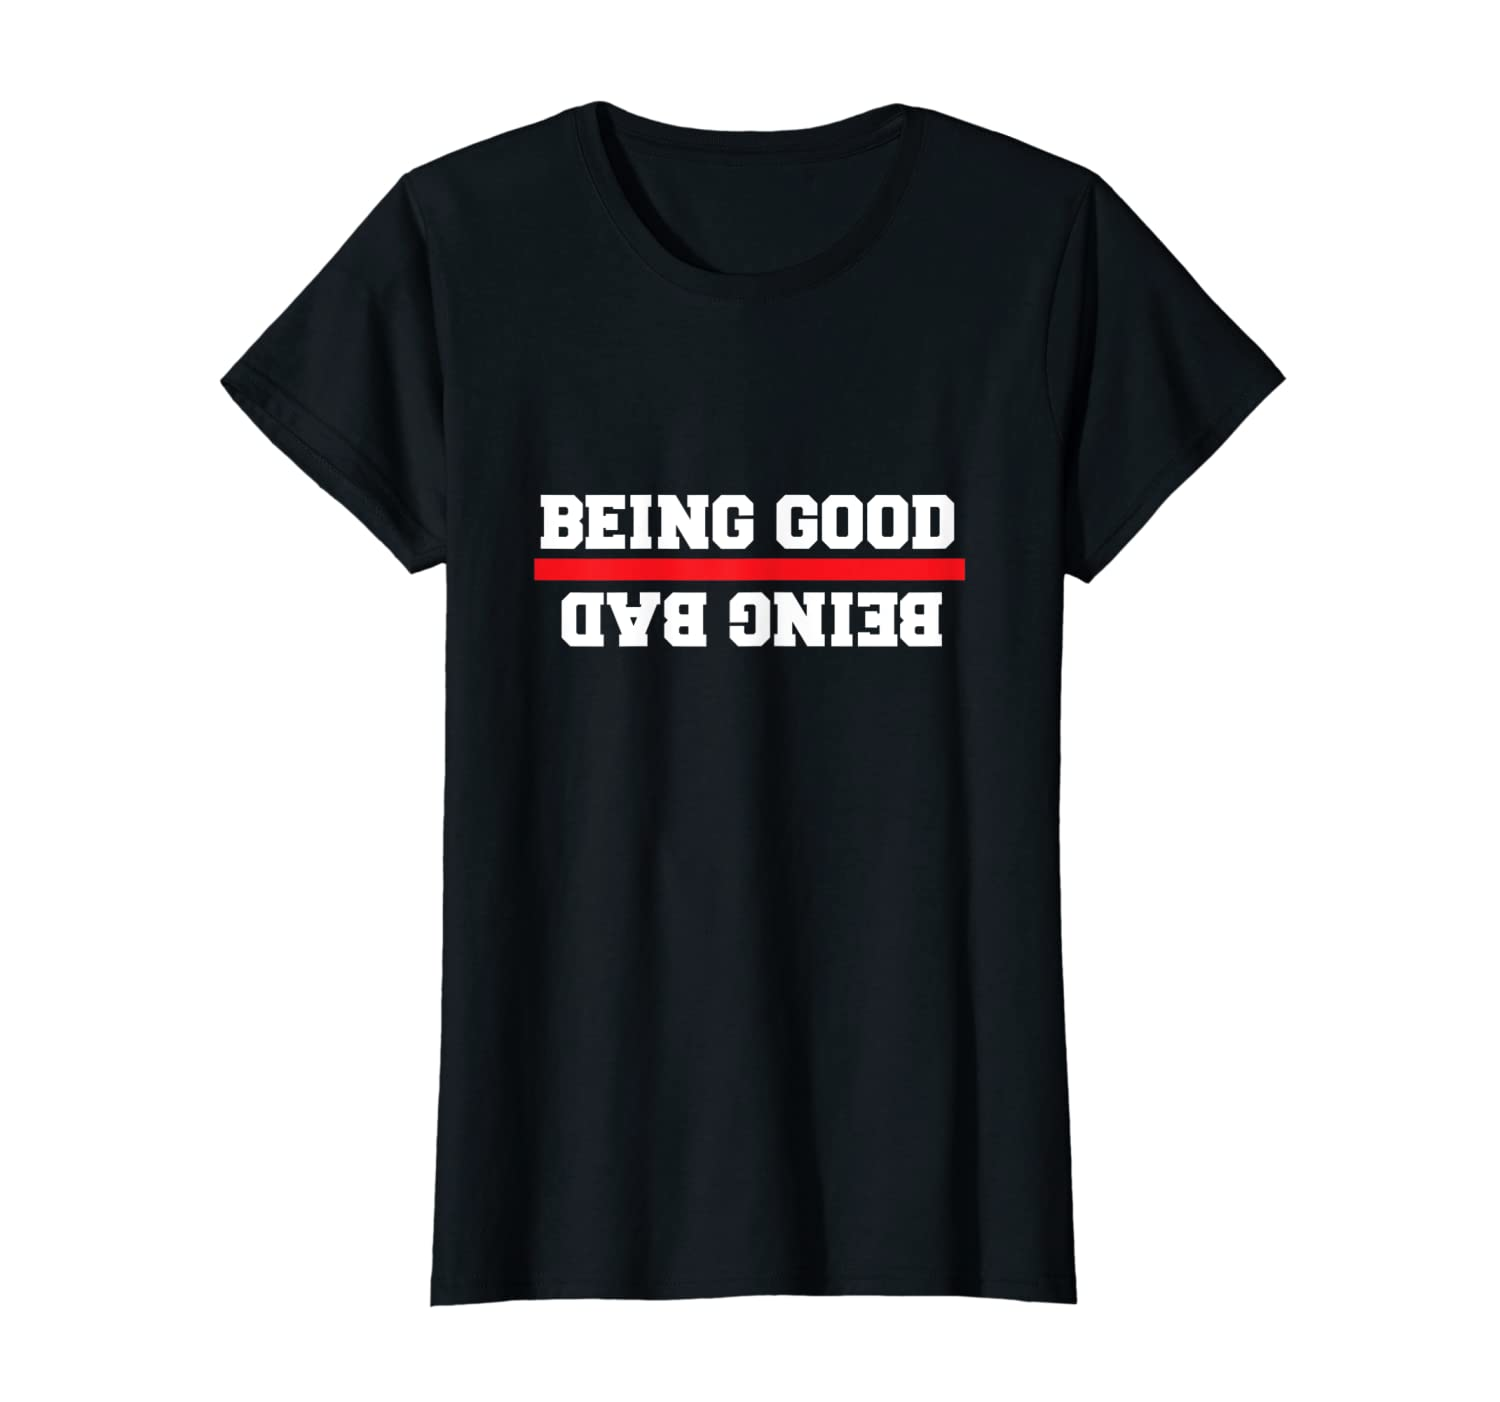 Womens Being Good, Being Bad Naughty Girl Funny T-Shirt